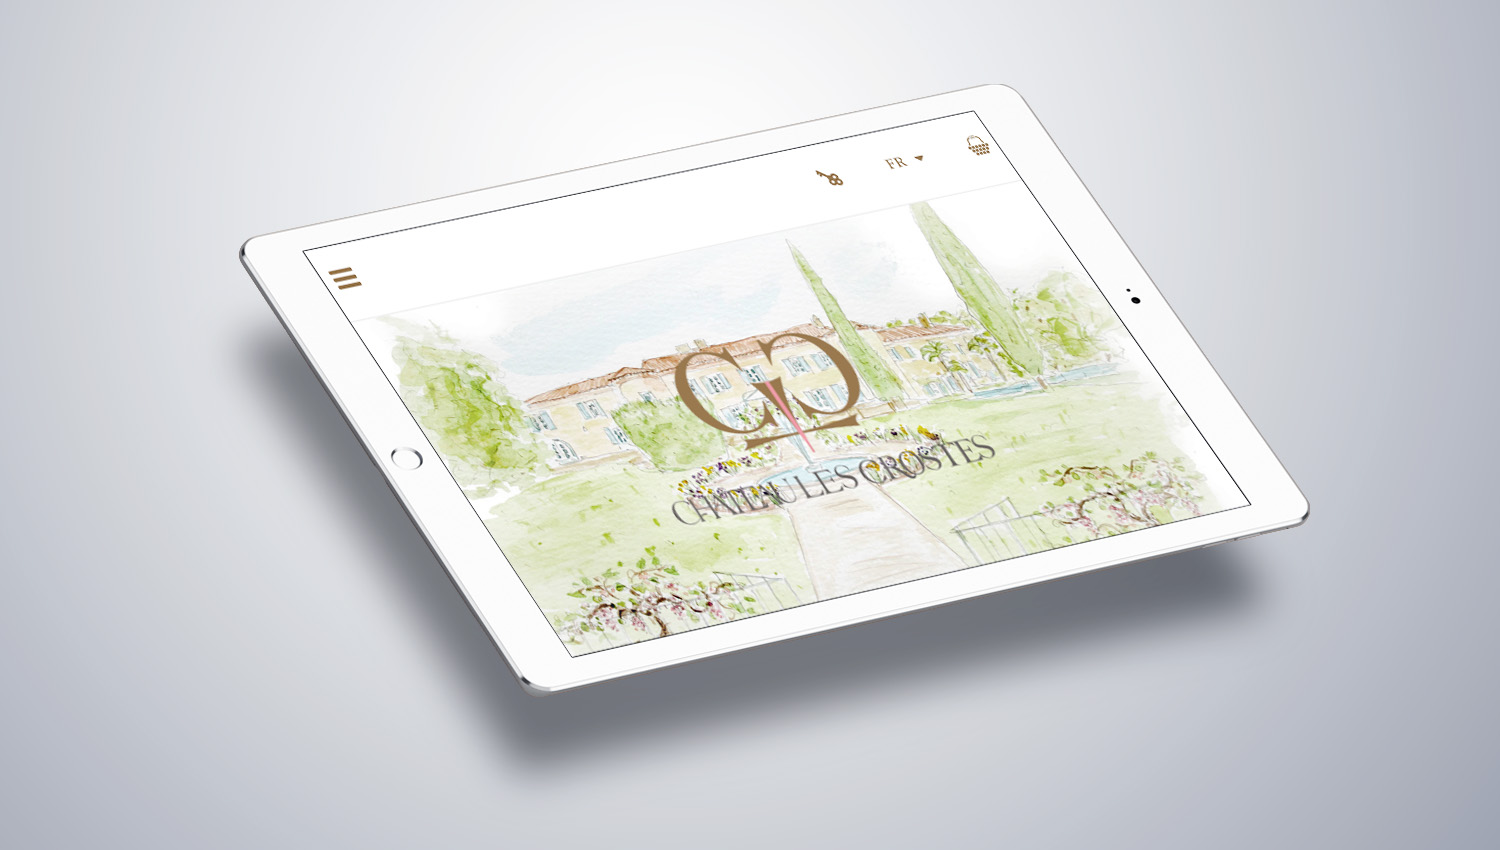 Web tablet desktop view for Château Les Crostes 2 by 8 Ways